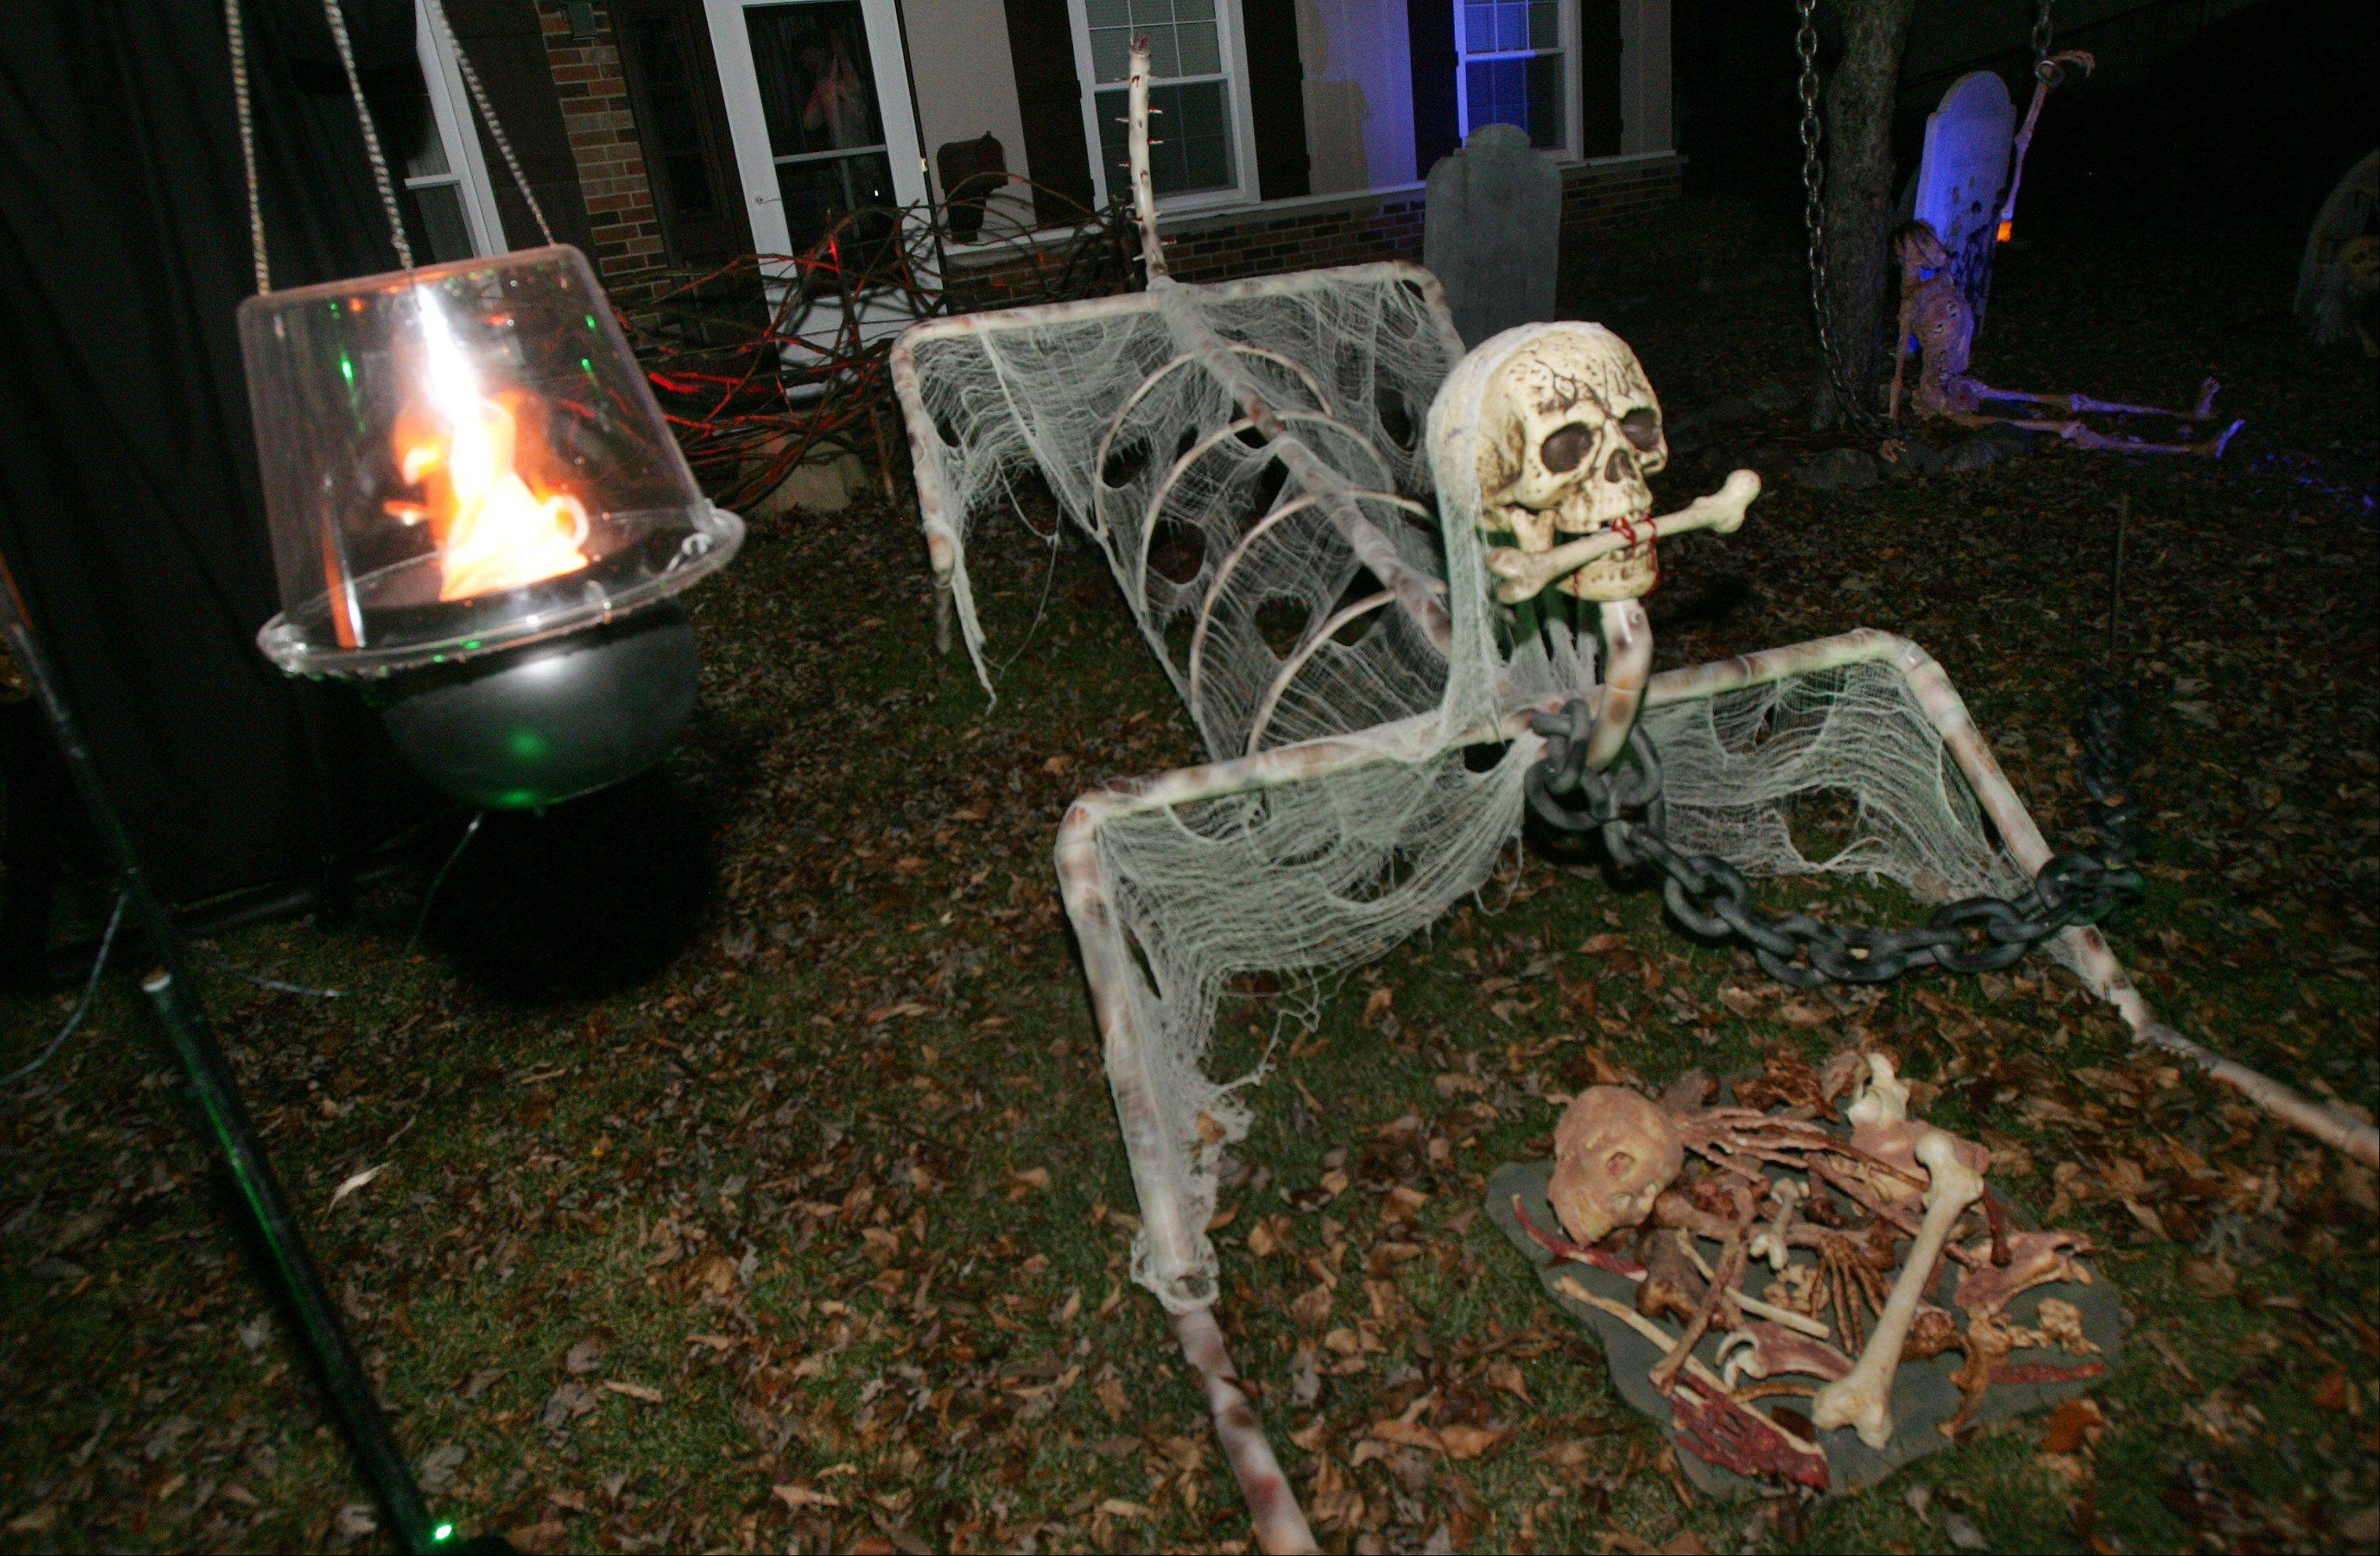 Fluffy guards the front yard of Todd and Mickey Horndasch's haunted house display on Old Mill Grove Road in Lake Zurich.